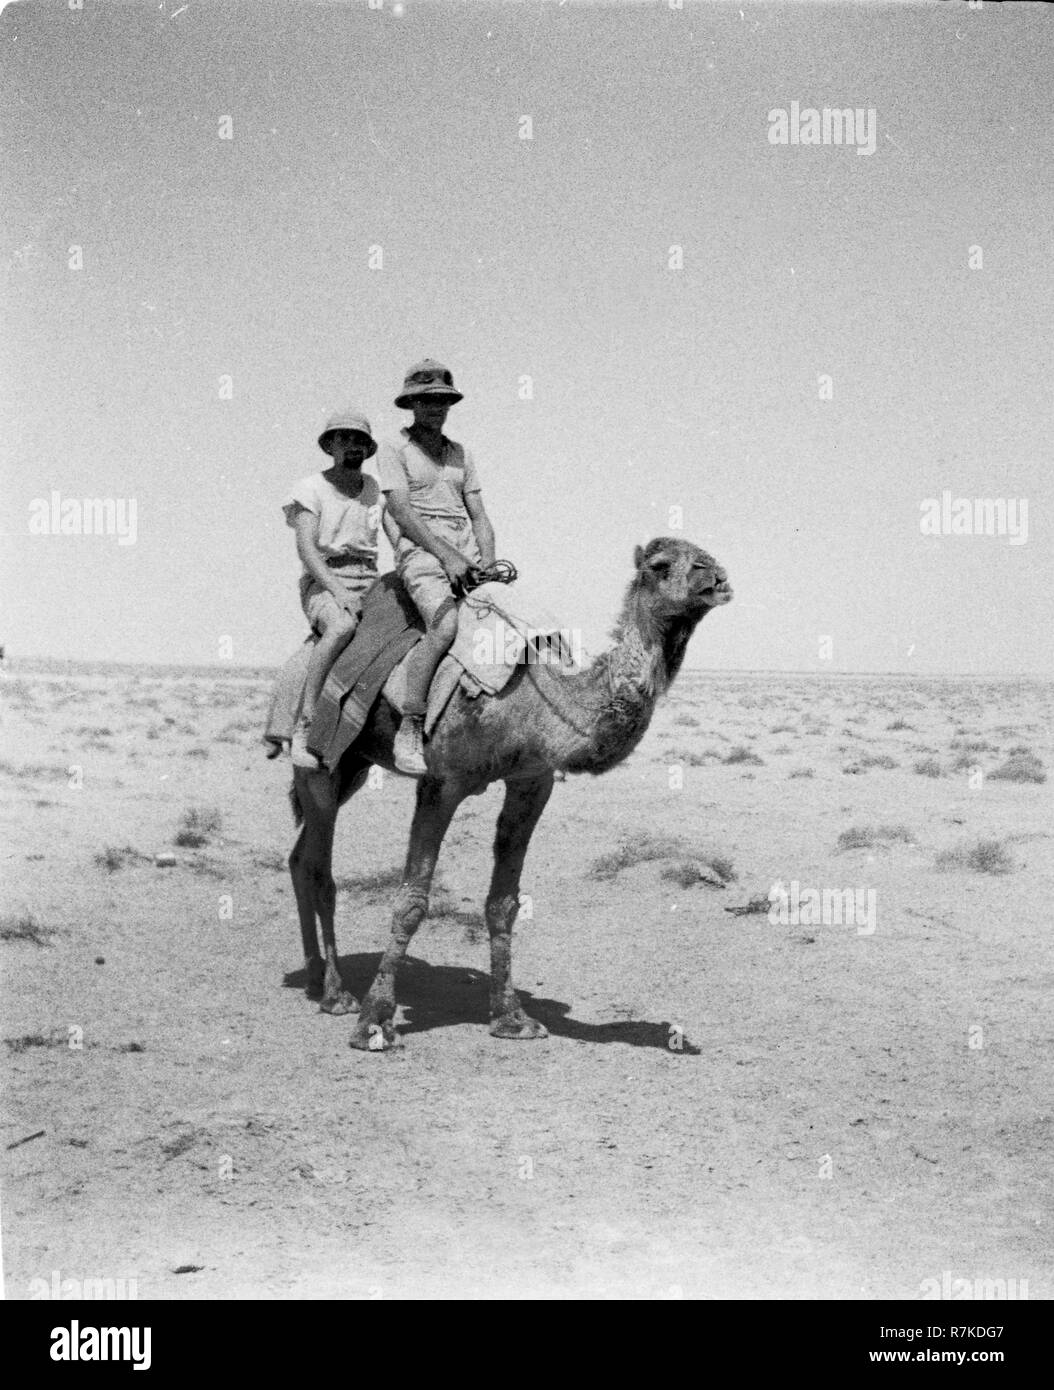 WW2 German Luftwaffe Soldiers riding a camel in North Africa - Stock Image